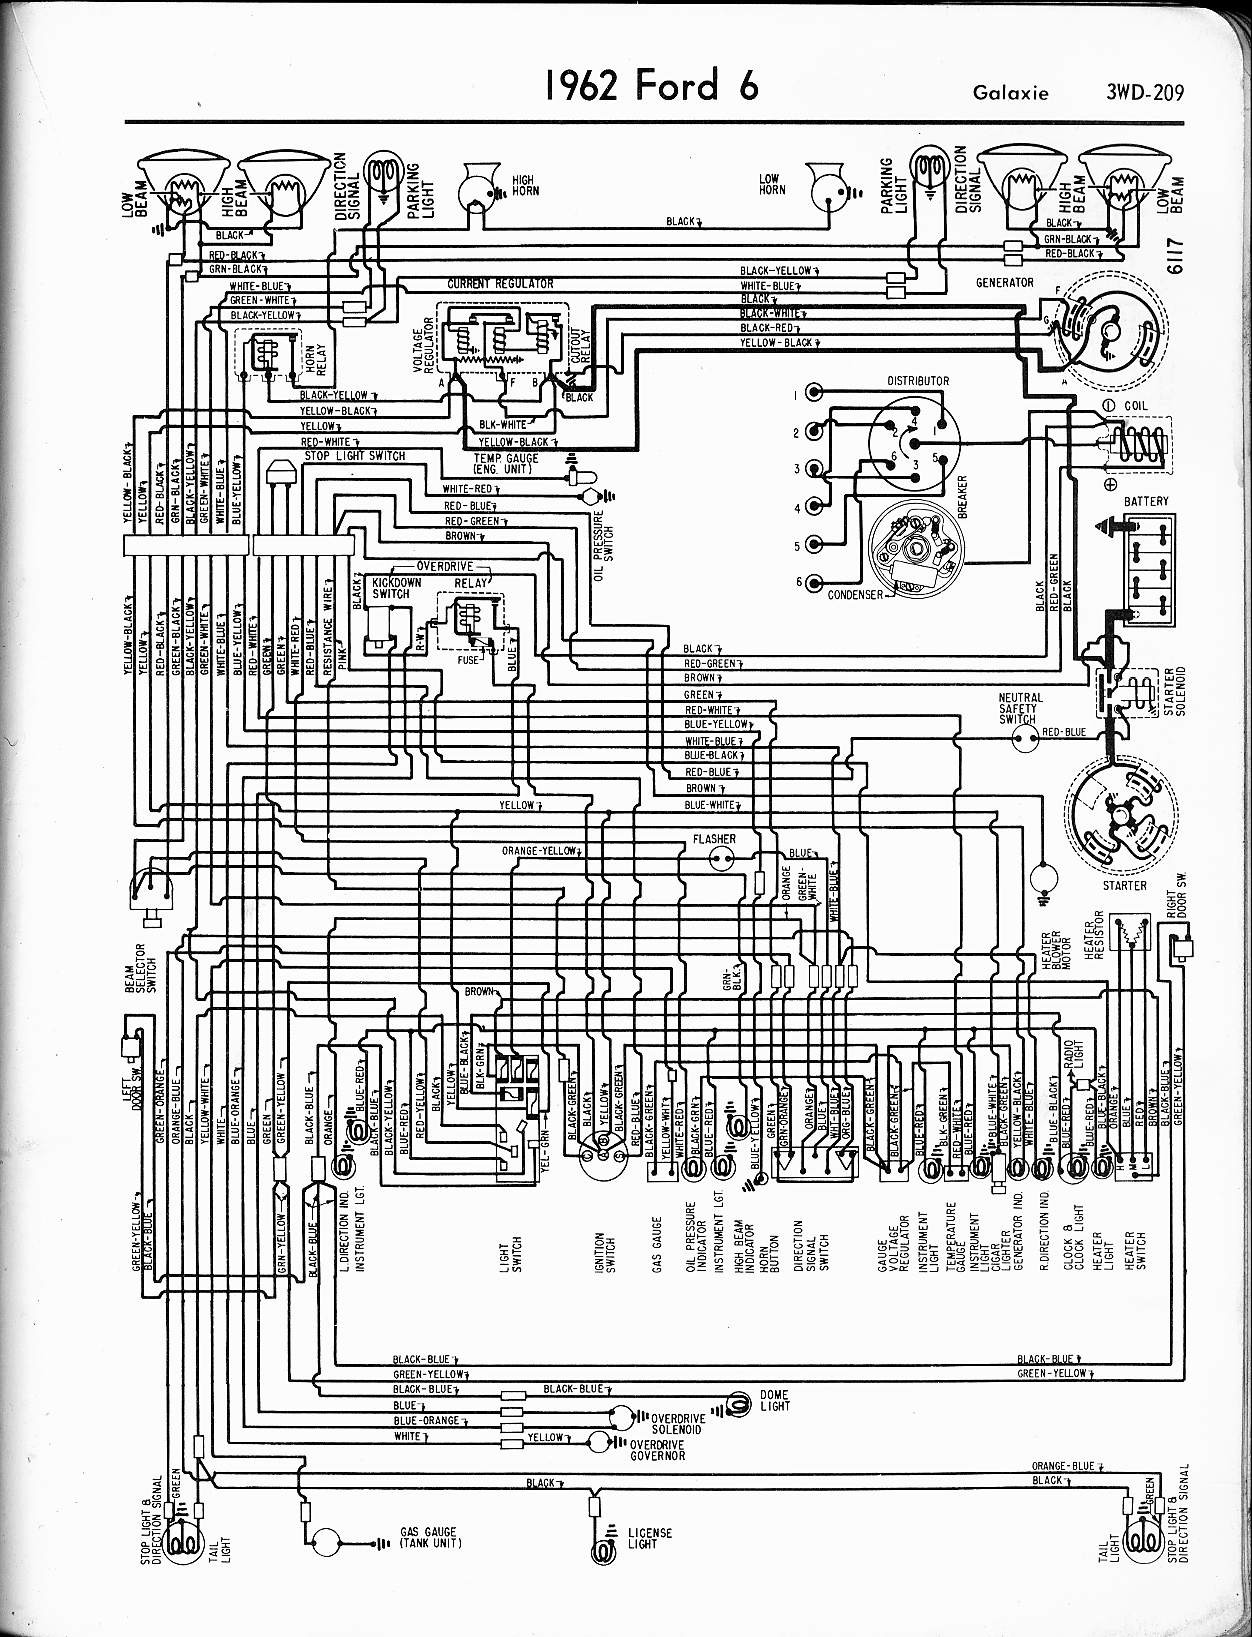 F250 Tail Light Wiring 57 65 ford Wiring Diagrams Of F250 Tail Light Wiring